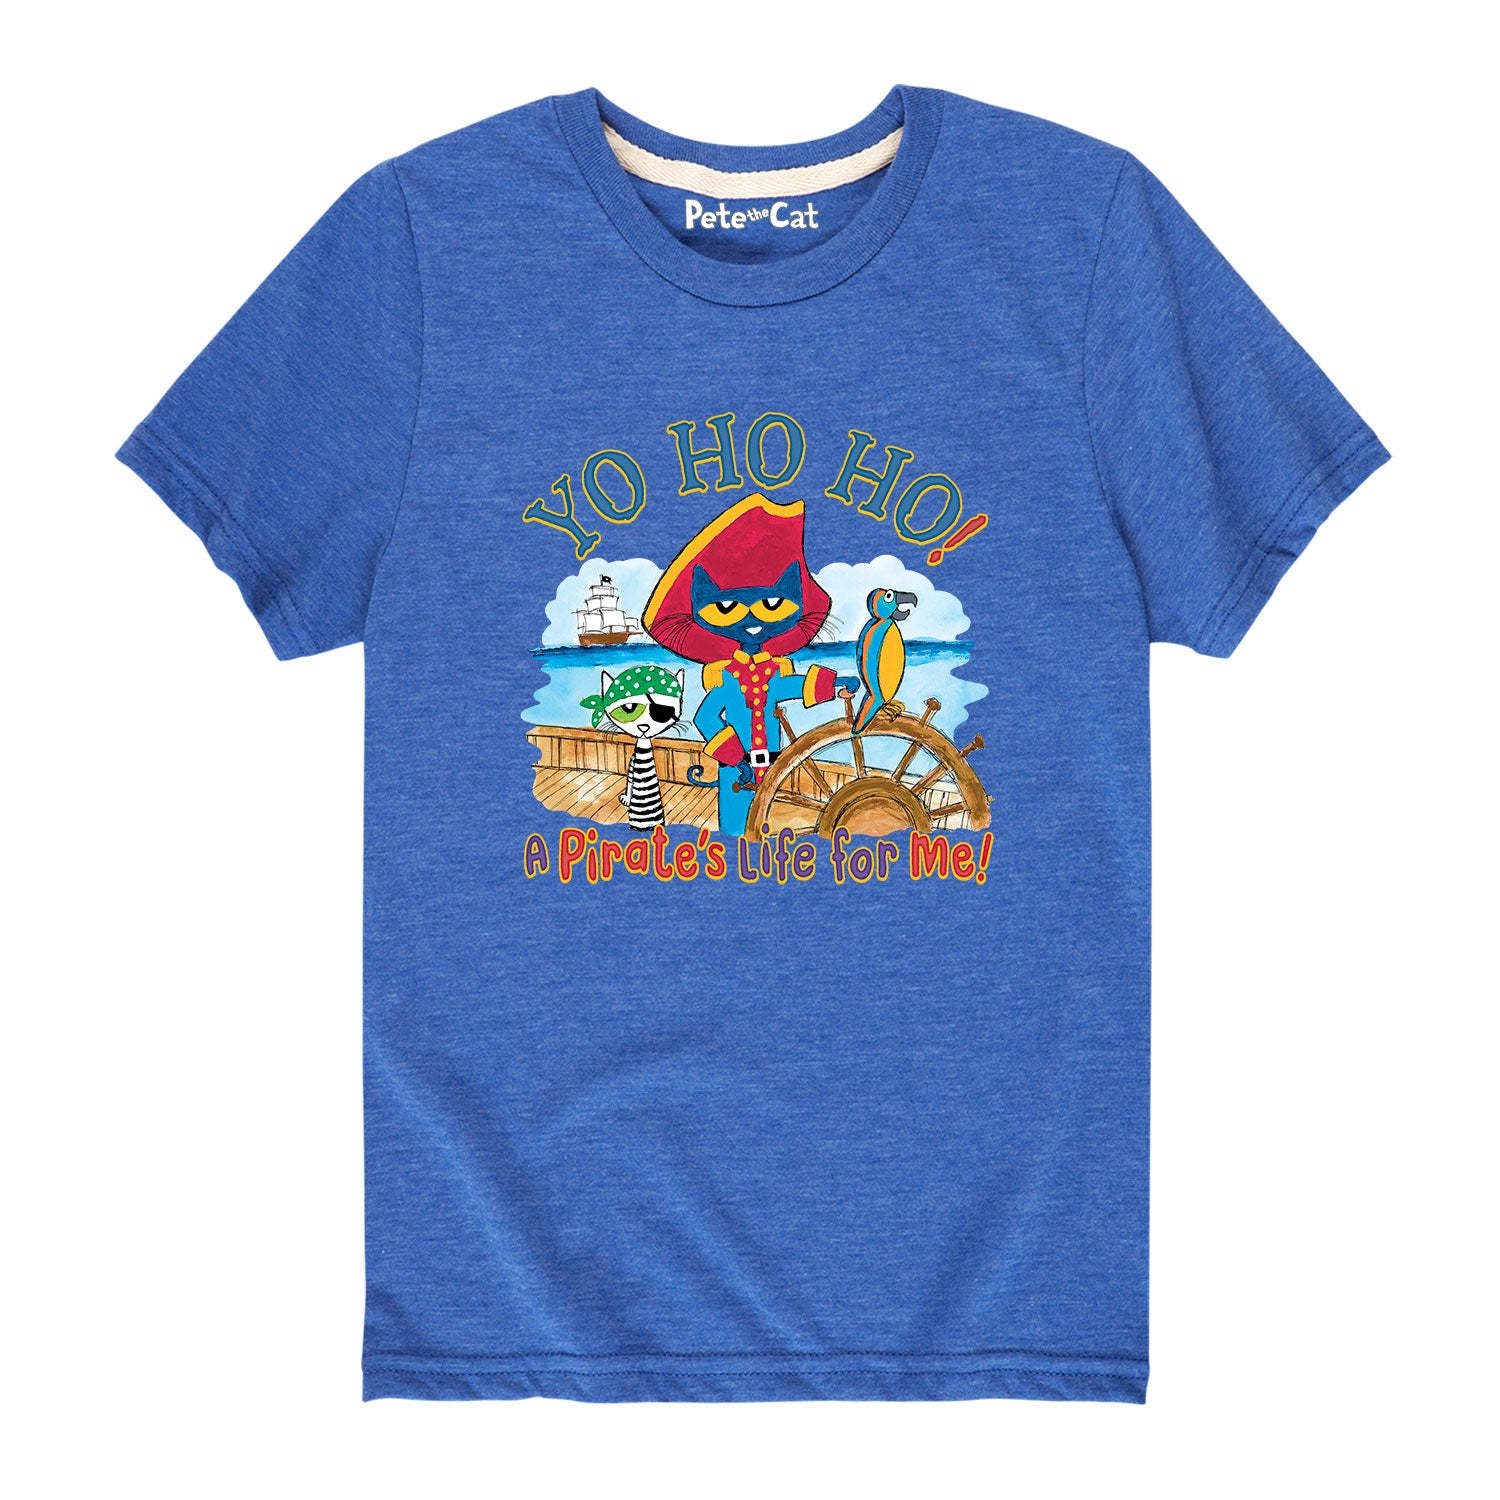 Pirate Yo Ho Ho - Youth & Toddler Short Sleeve T-Shirt